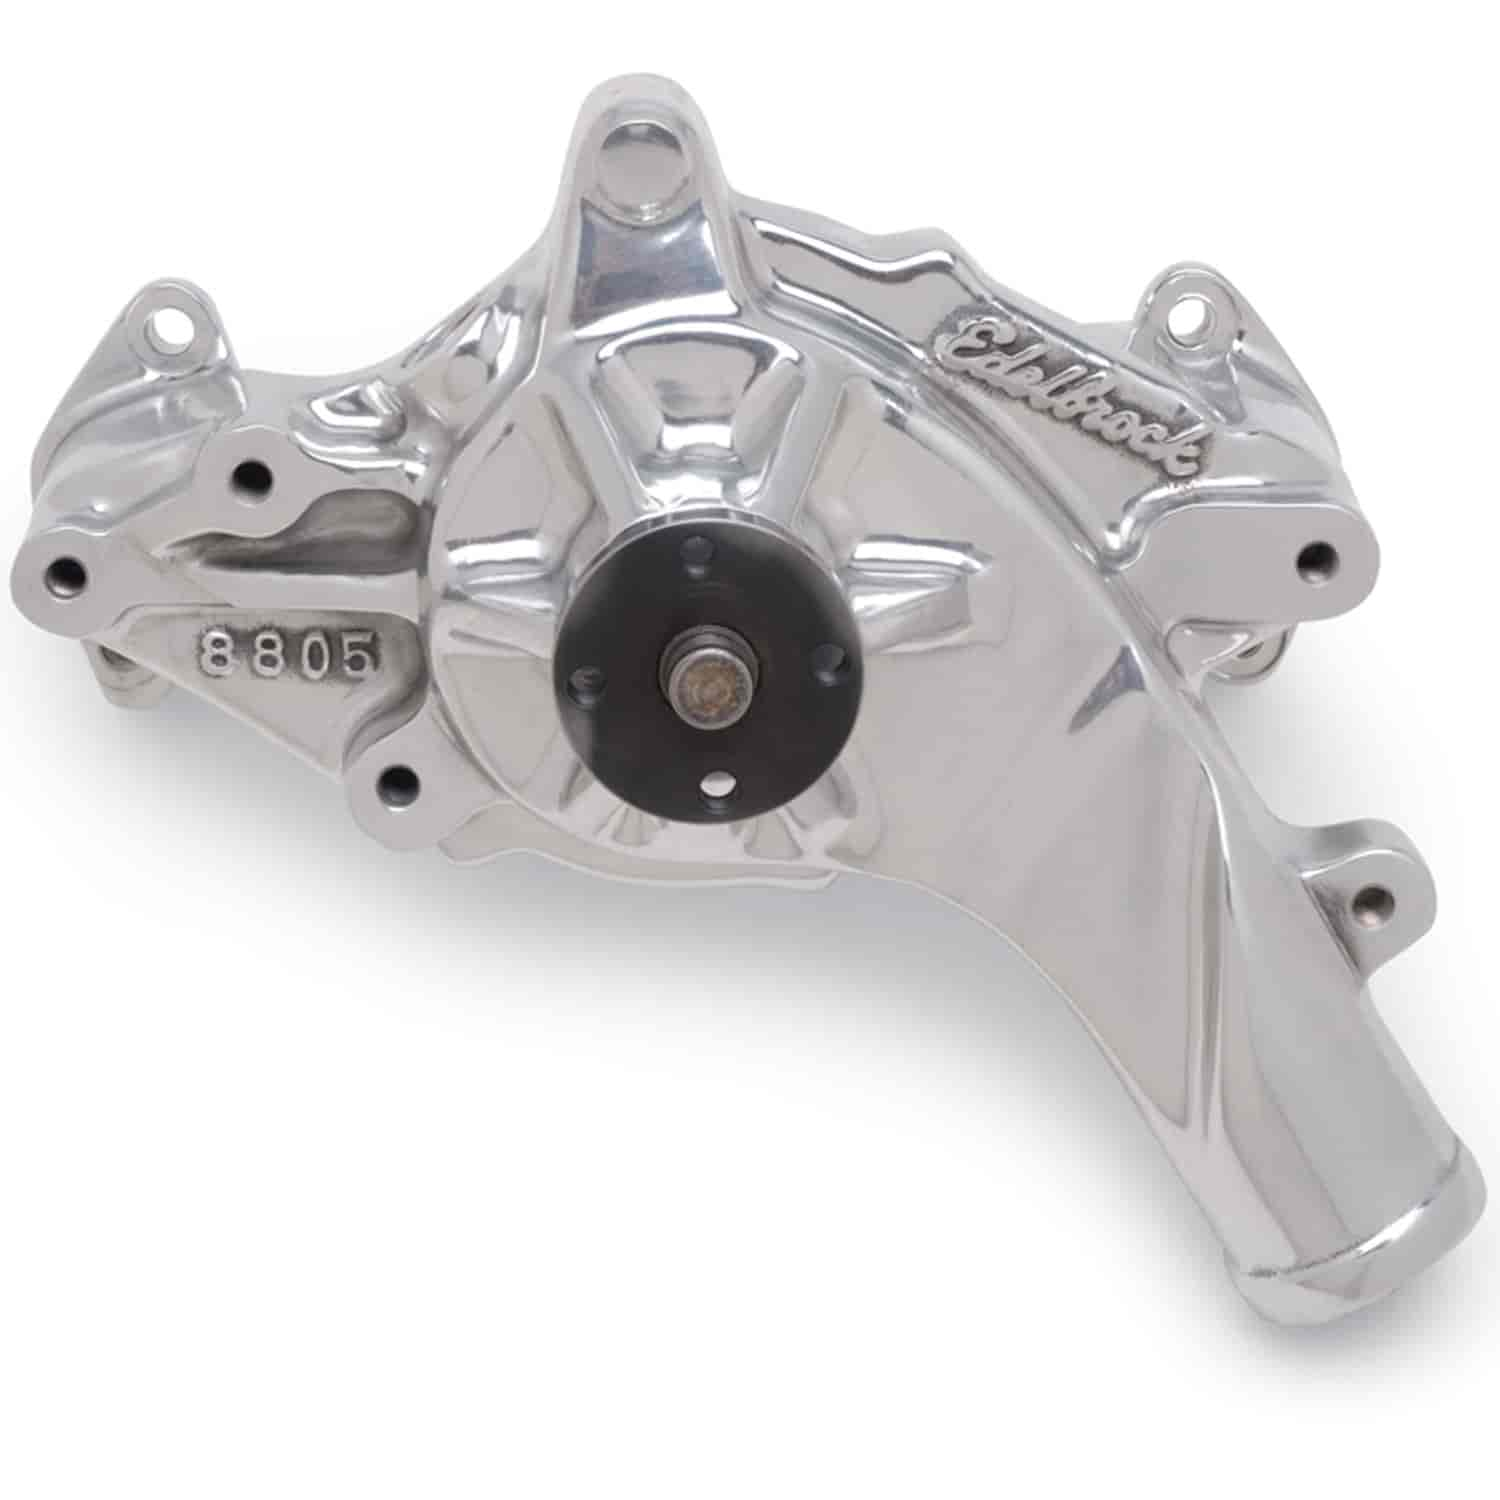 Edelbrock 8835 - Edelbrock Victor Series Water Pumps - Polished Finish